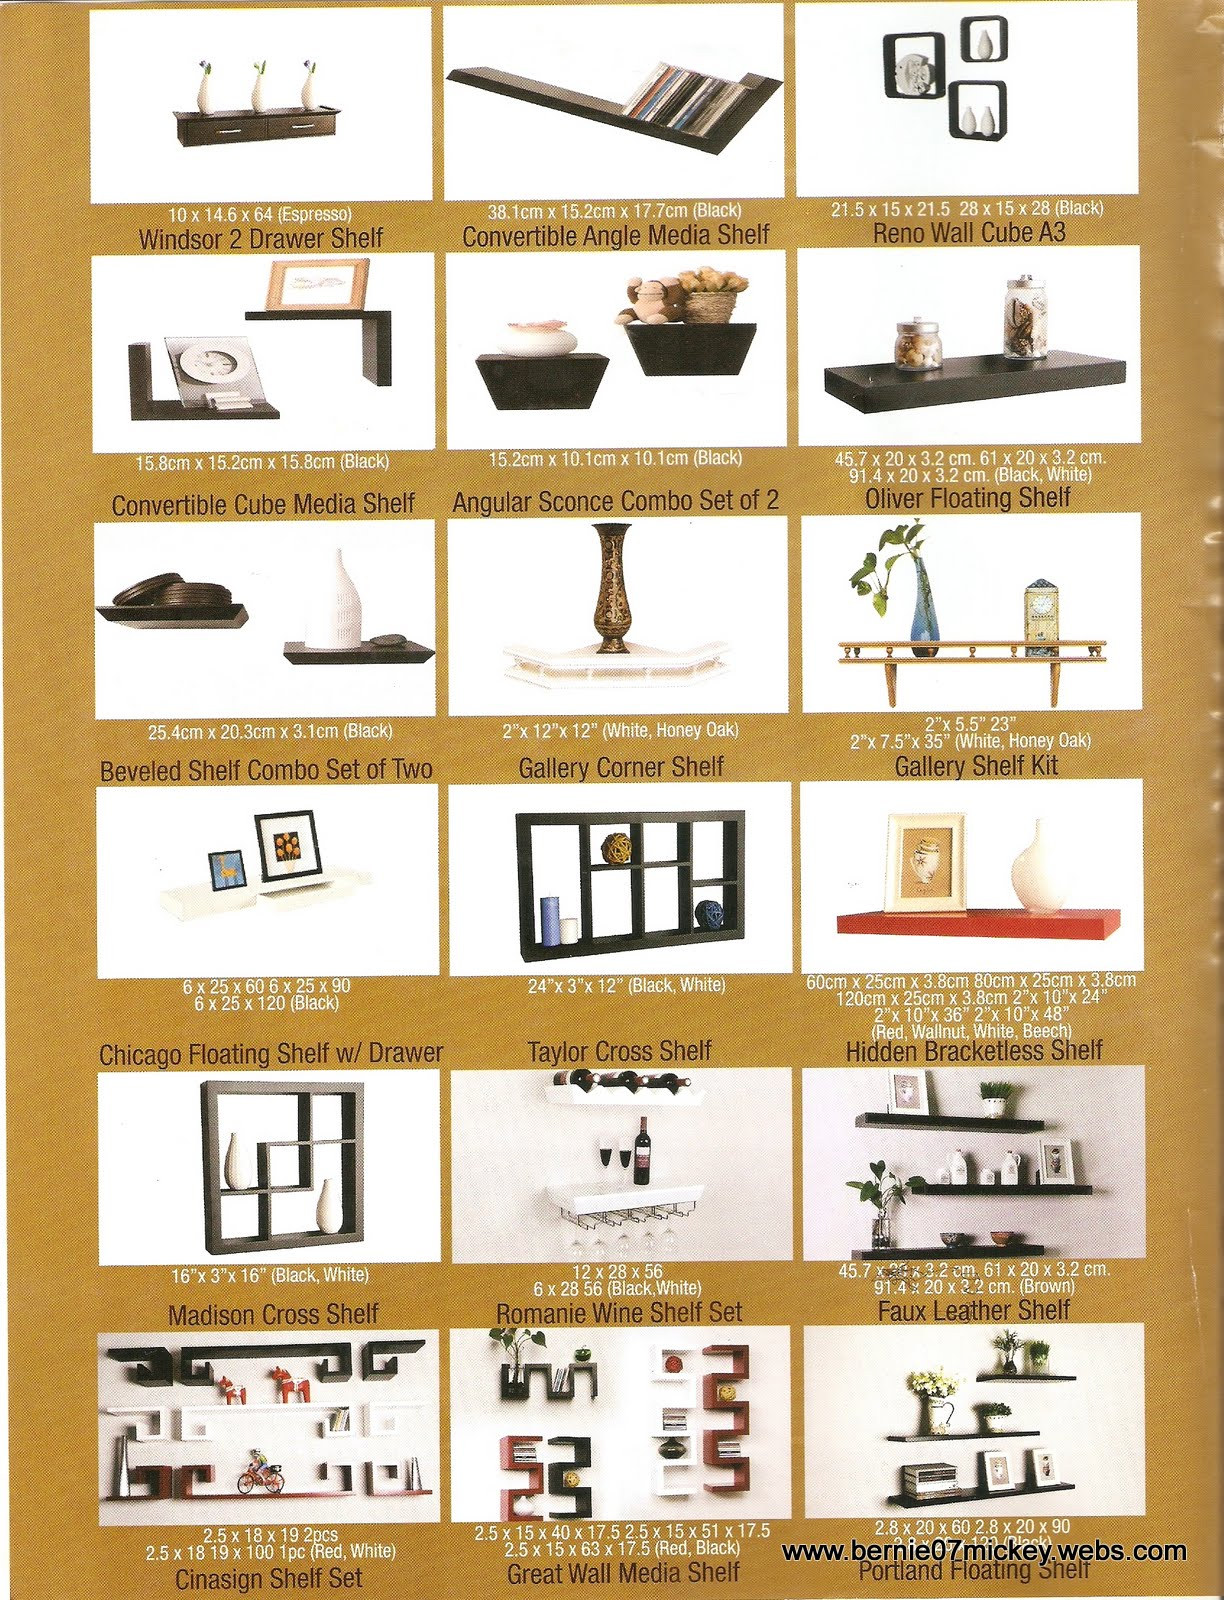 F1 Digital Scrapaholic Helpful Brochures Of House Fixtures Mps Whitehoney Onda Marketing For Colorful Lavatory Home Depot